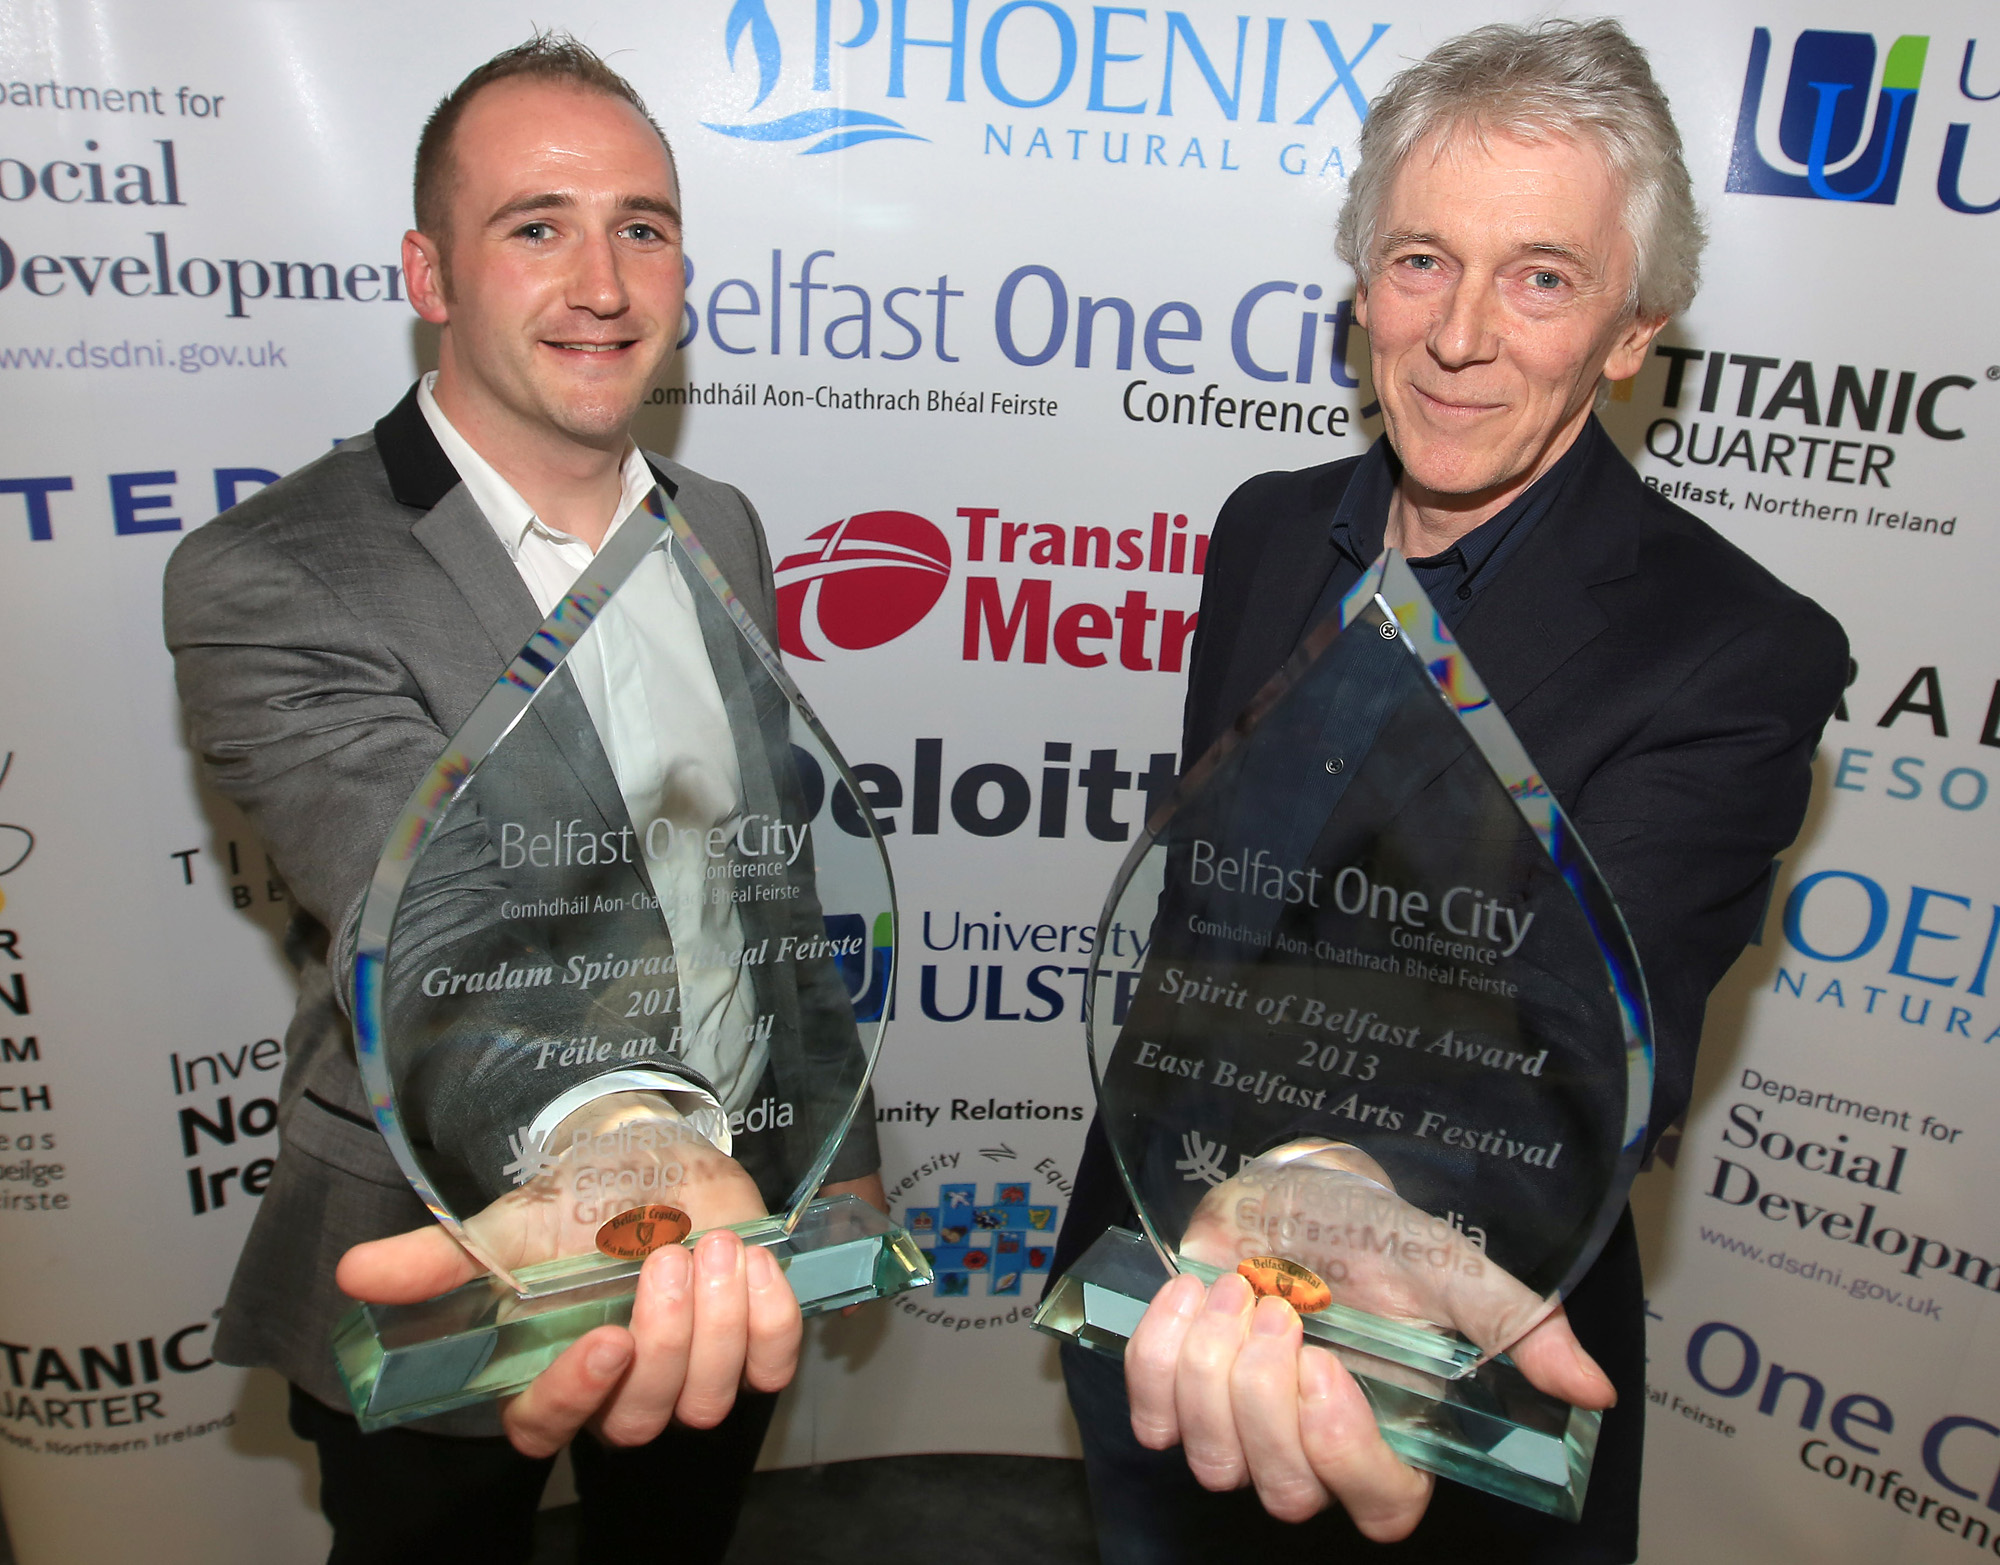 Belfast MET E3, One City Conference 'Lifting the City' . pictured: Kevin Gamble (Feile an Phobail) and Maurice Kinkead (East Belfast Arts festival) 95JC13